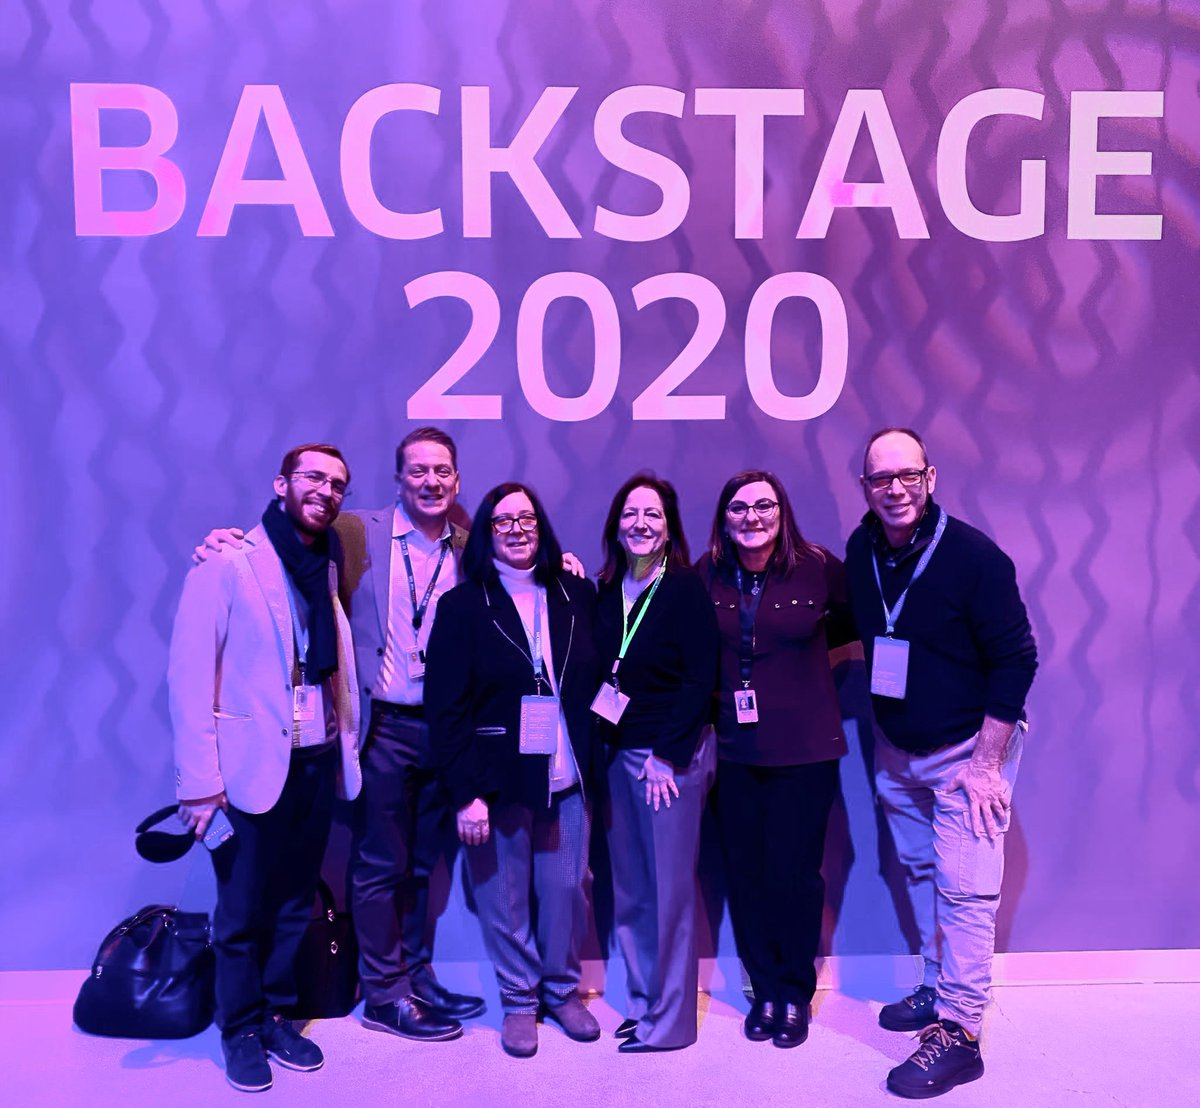 Backstage 2020 is where you want to be. Fun times catching up with old friends, opportunities to make new friends. @weareunited @JMRoitman @bcstoller_ual @Tobyatunited